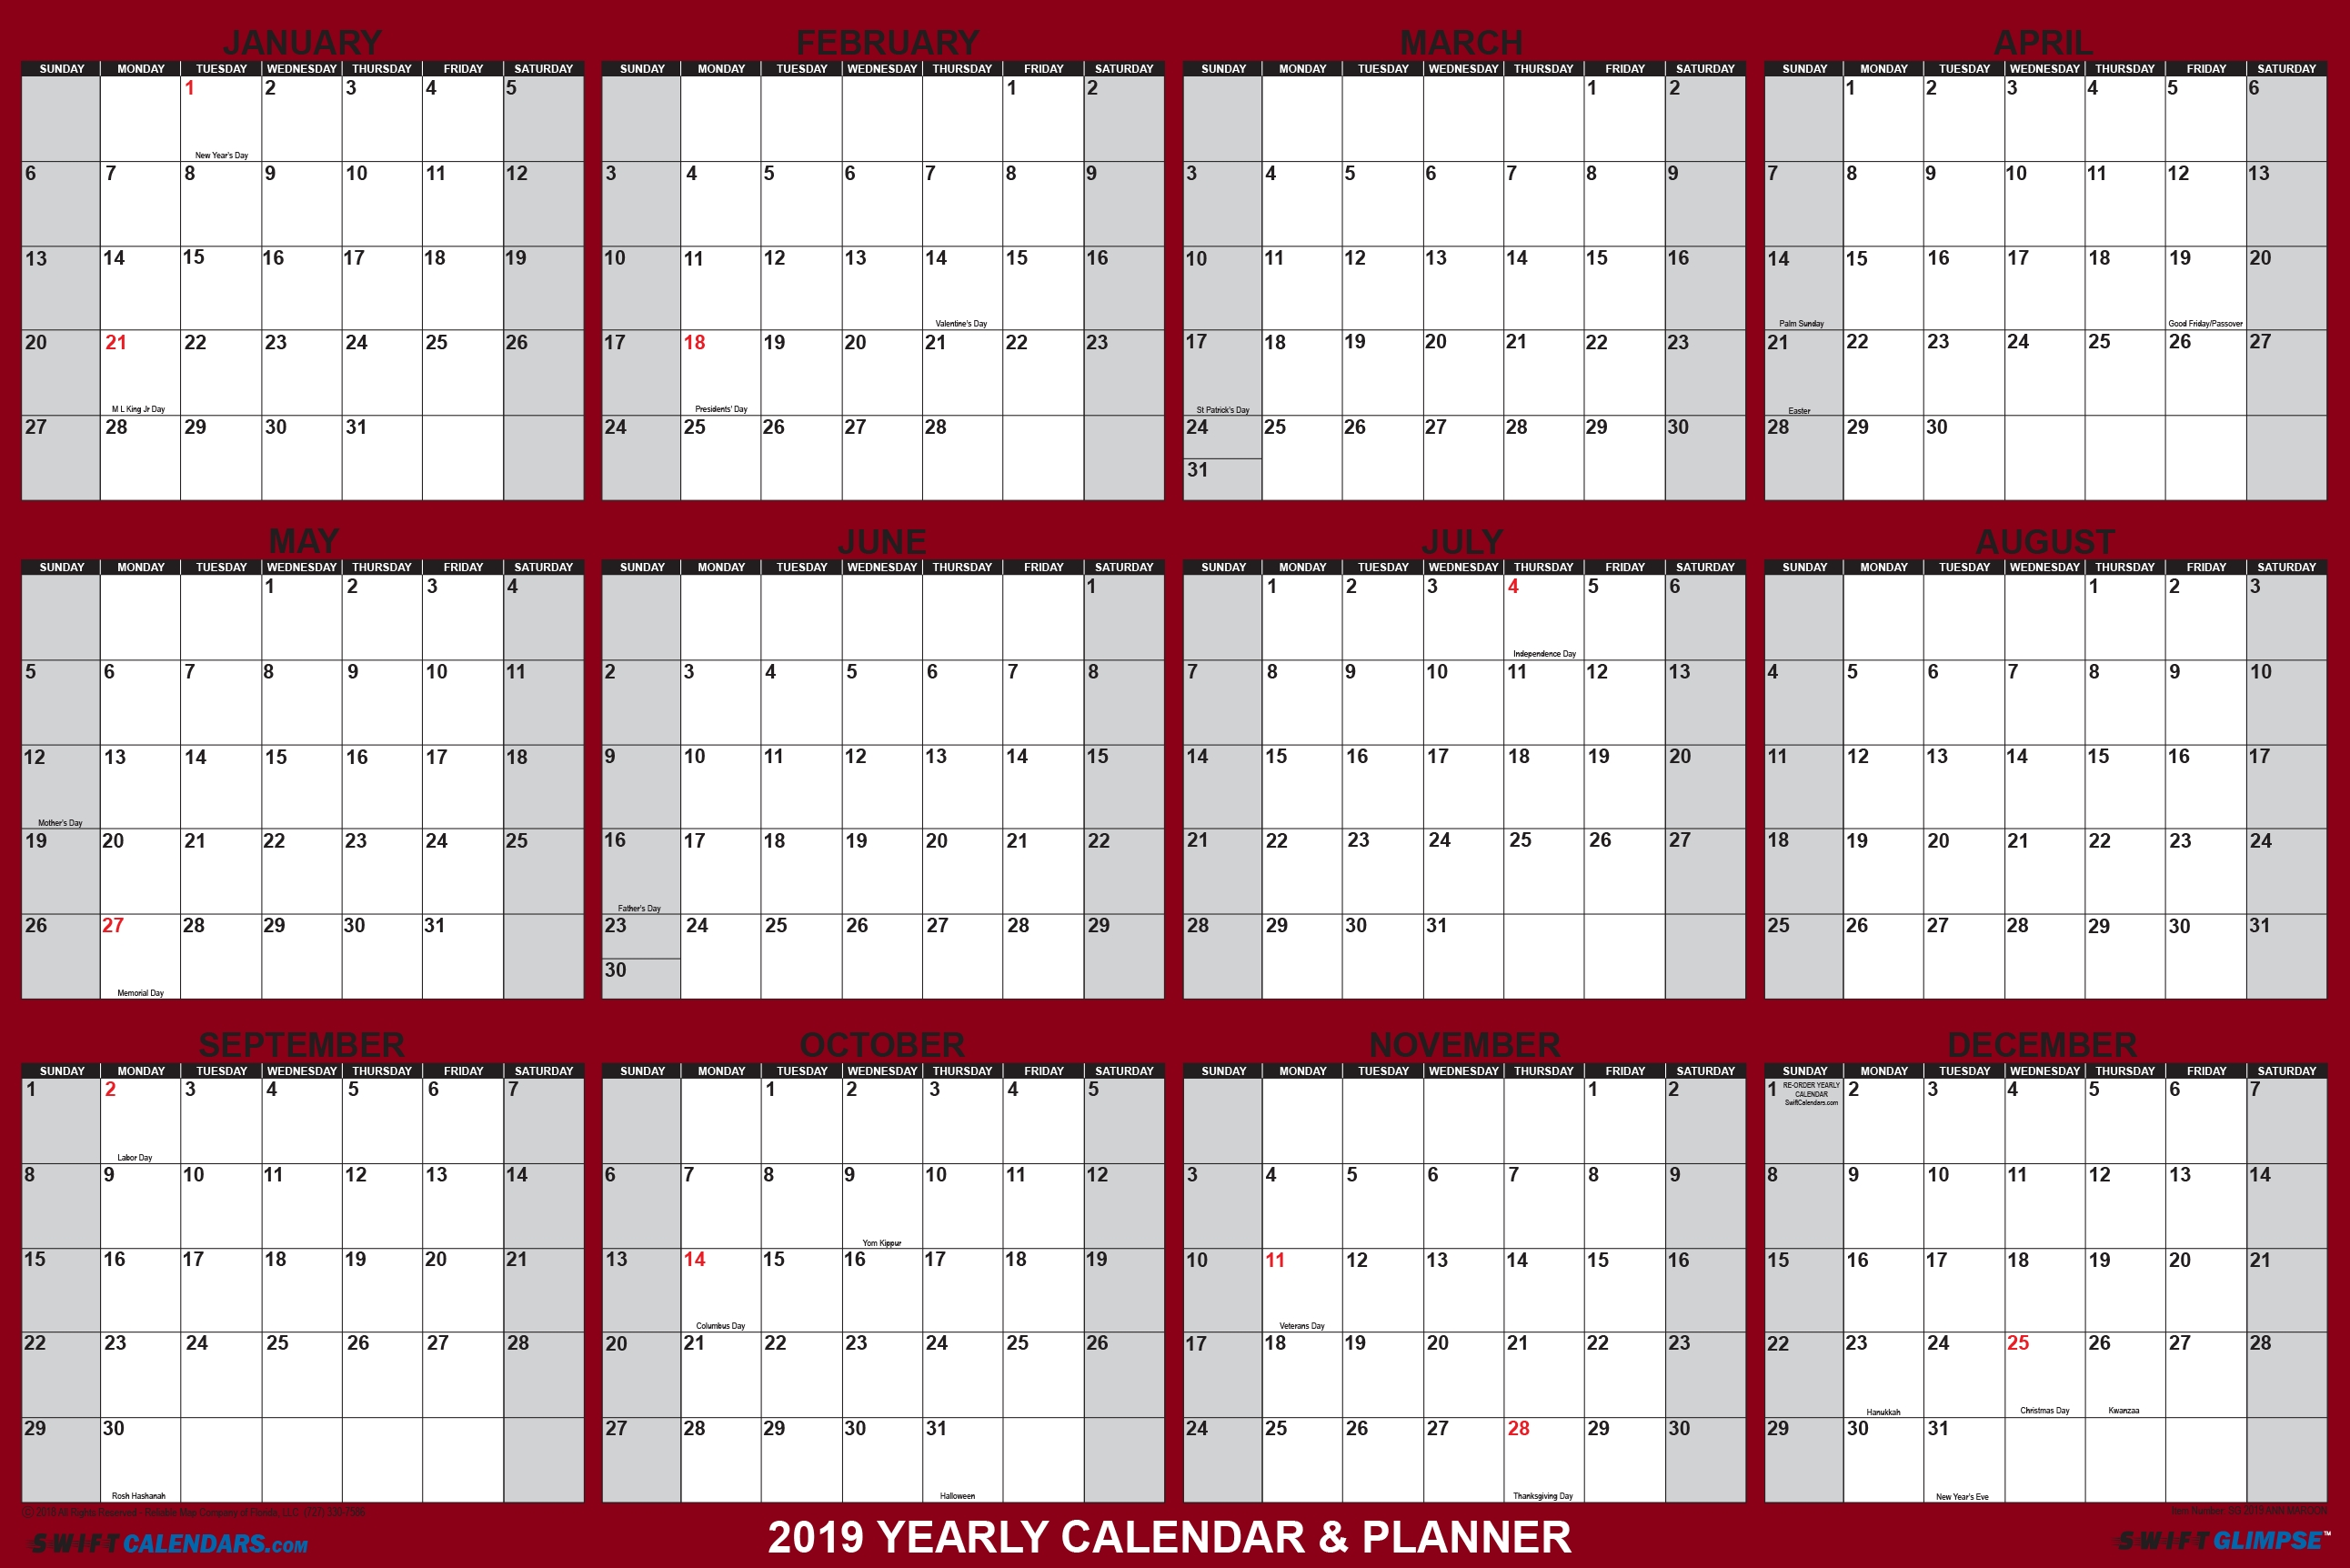 "Swiftglimpse Wall Calendar 2019, Yearly, 24 X 36"", 12 Months Laminated within 12 X 12 Wall Calendar Holder"